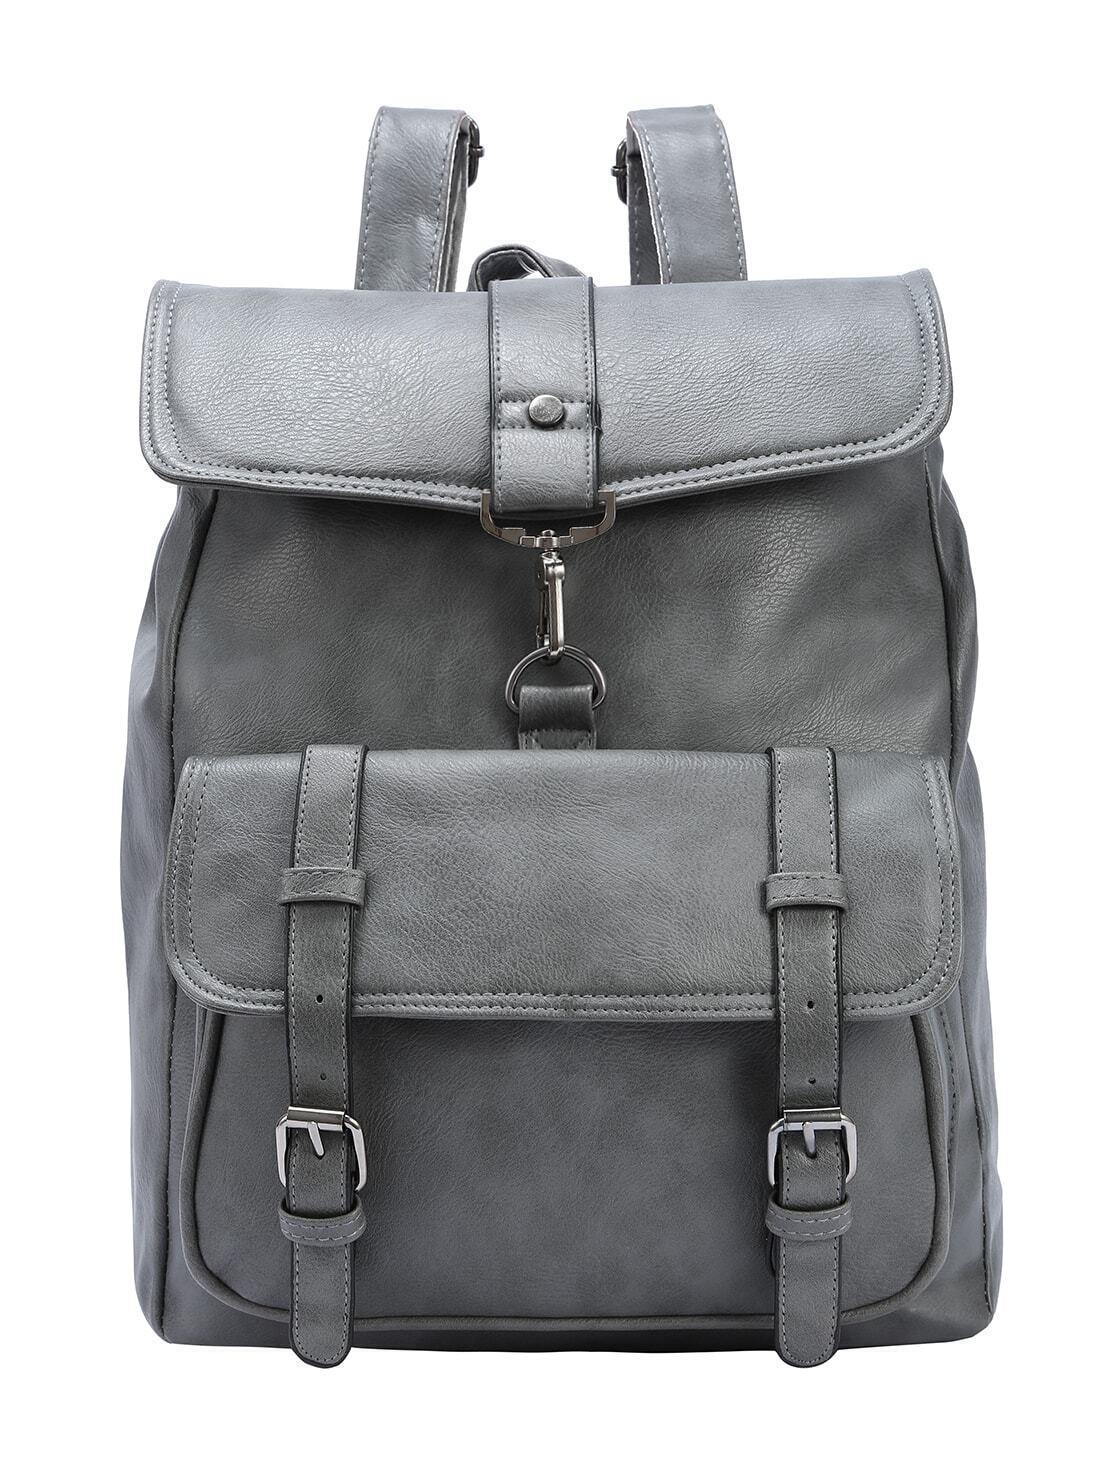 Grey Faux Leather Hook Lock Flap Backpack